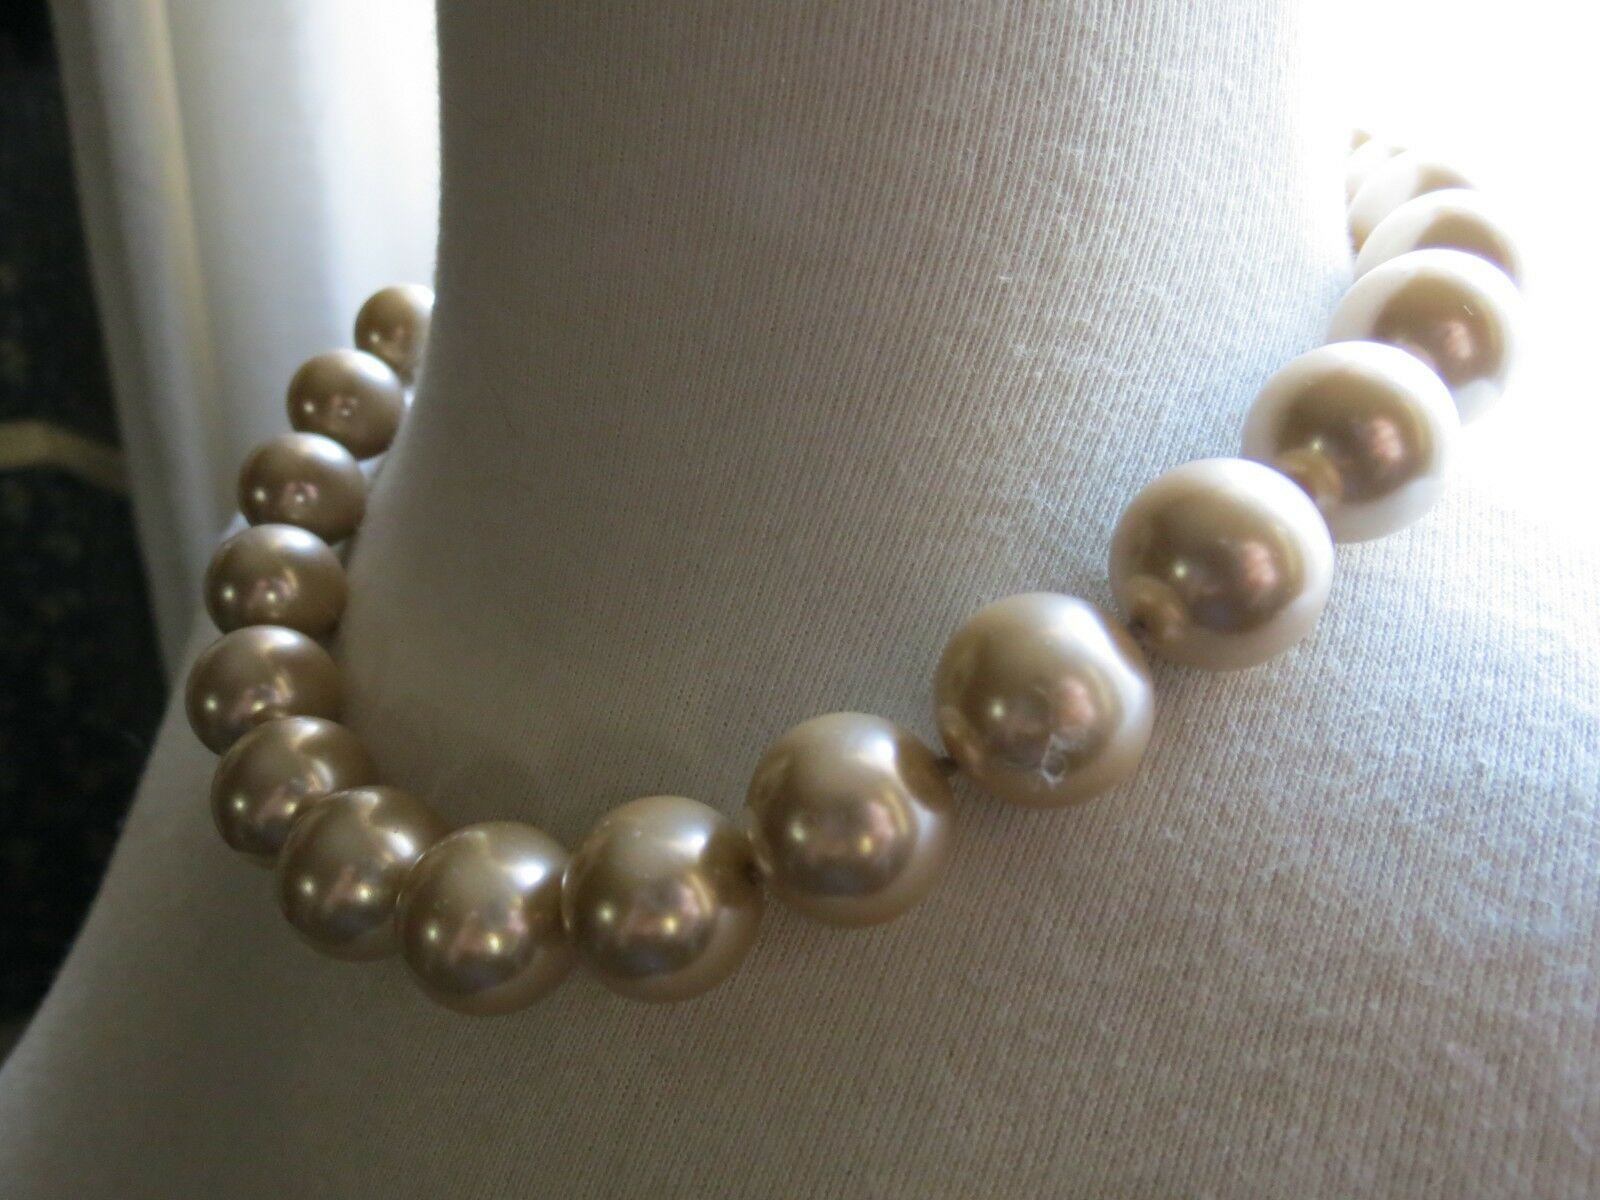 VTG Monet Big Pearl Necklace Hand Knotted Sable Cream Lobster 16mm Glass Beads image 4